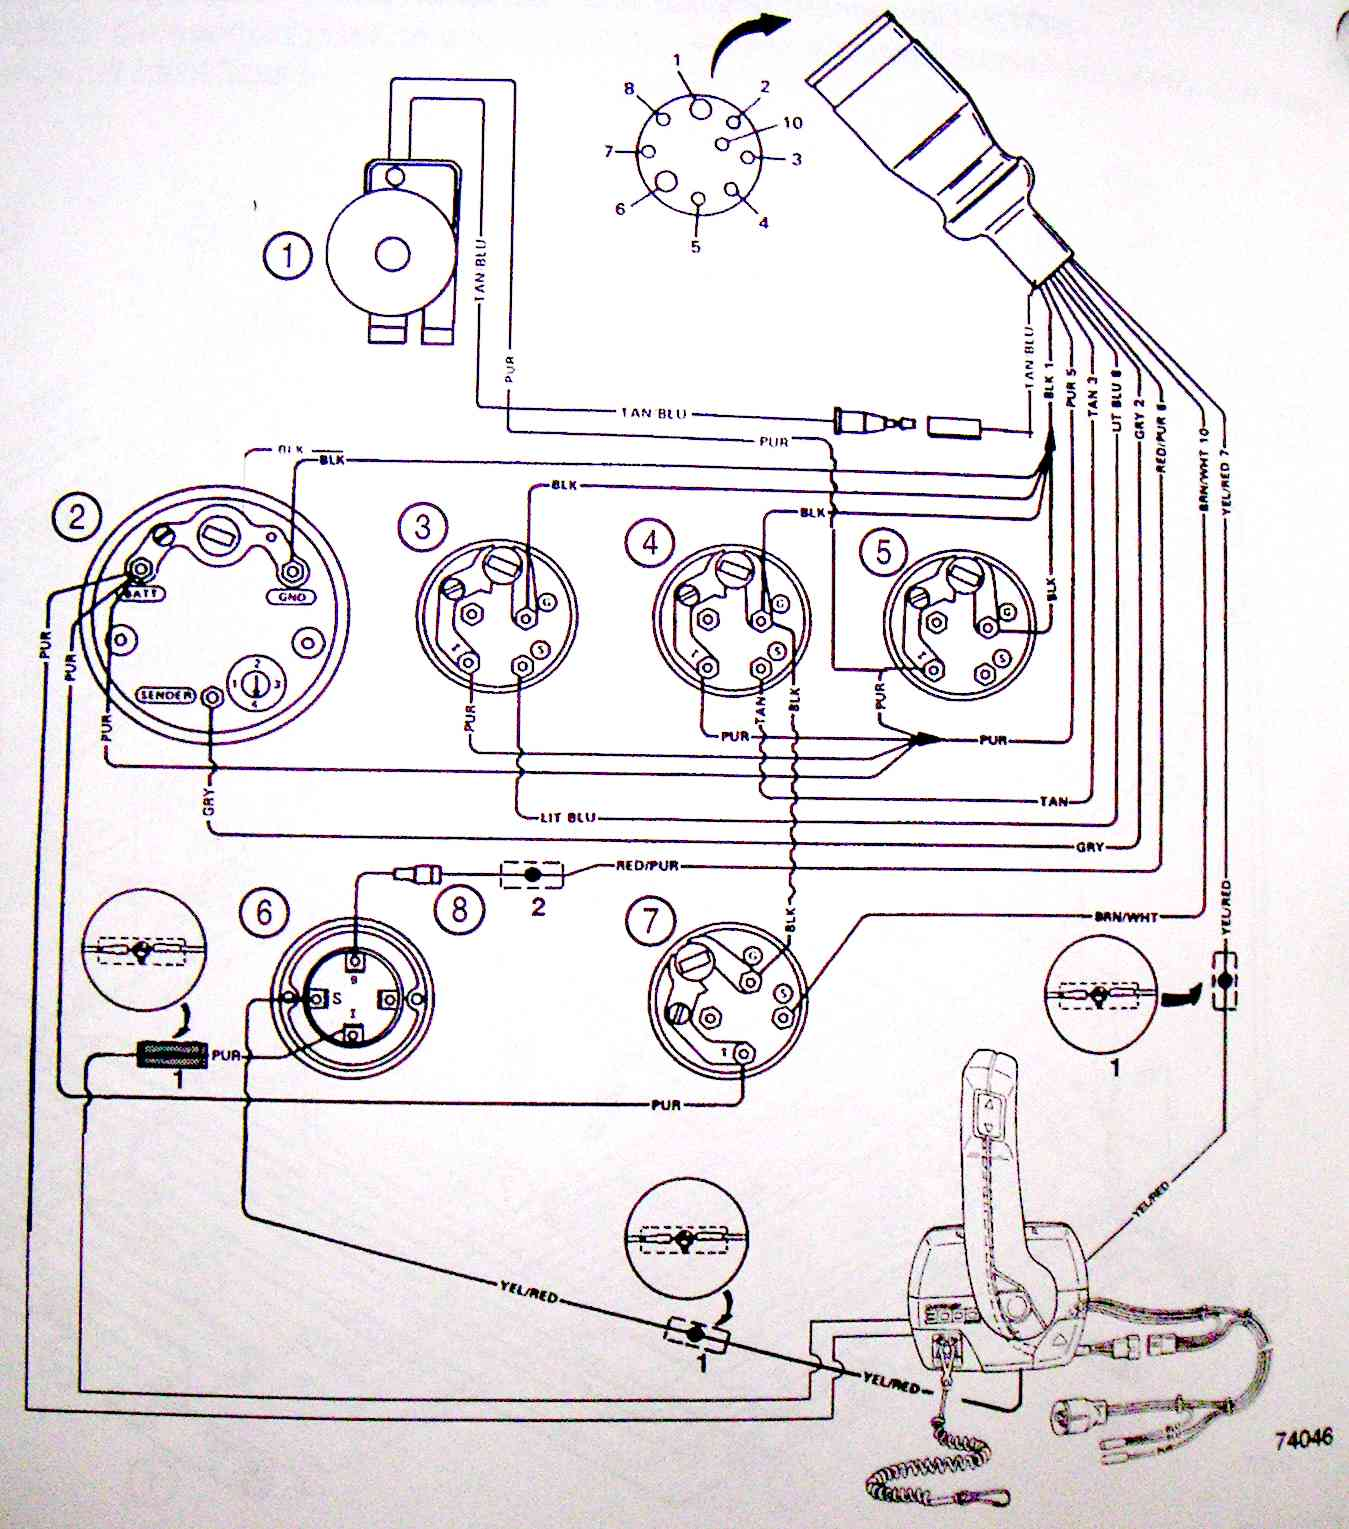 BoatHarness74046 yamaha outboard motor wiring diagrams the wiring diagram volvo penta wiring harness diagram at edmiracle.co